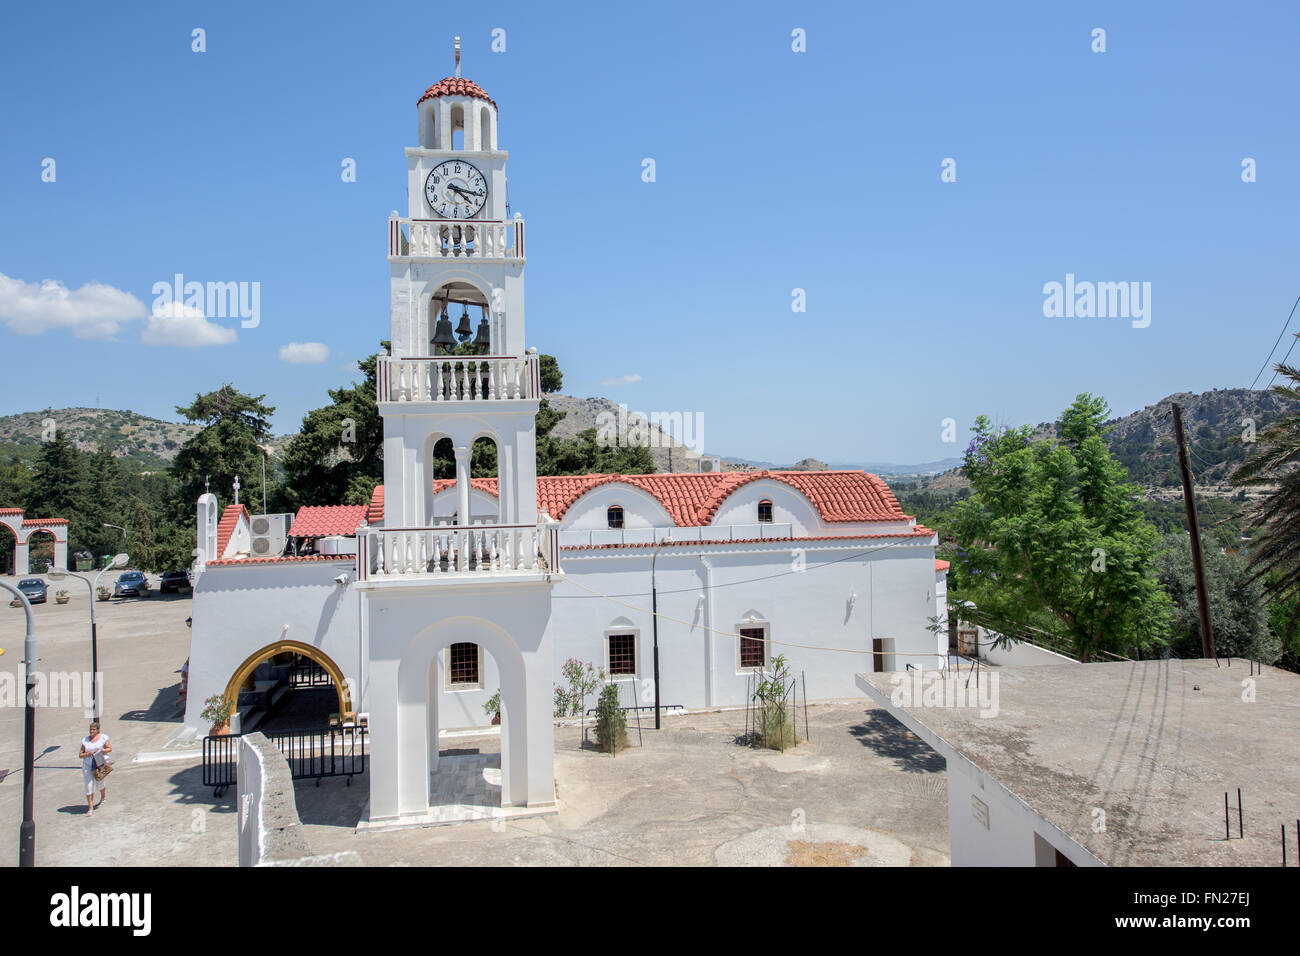 Monastery of Panagia Tsambika on Rhodos island - Stock Image